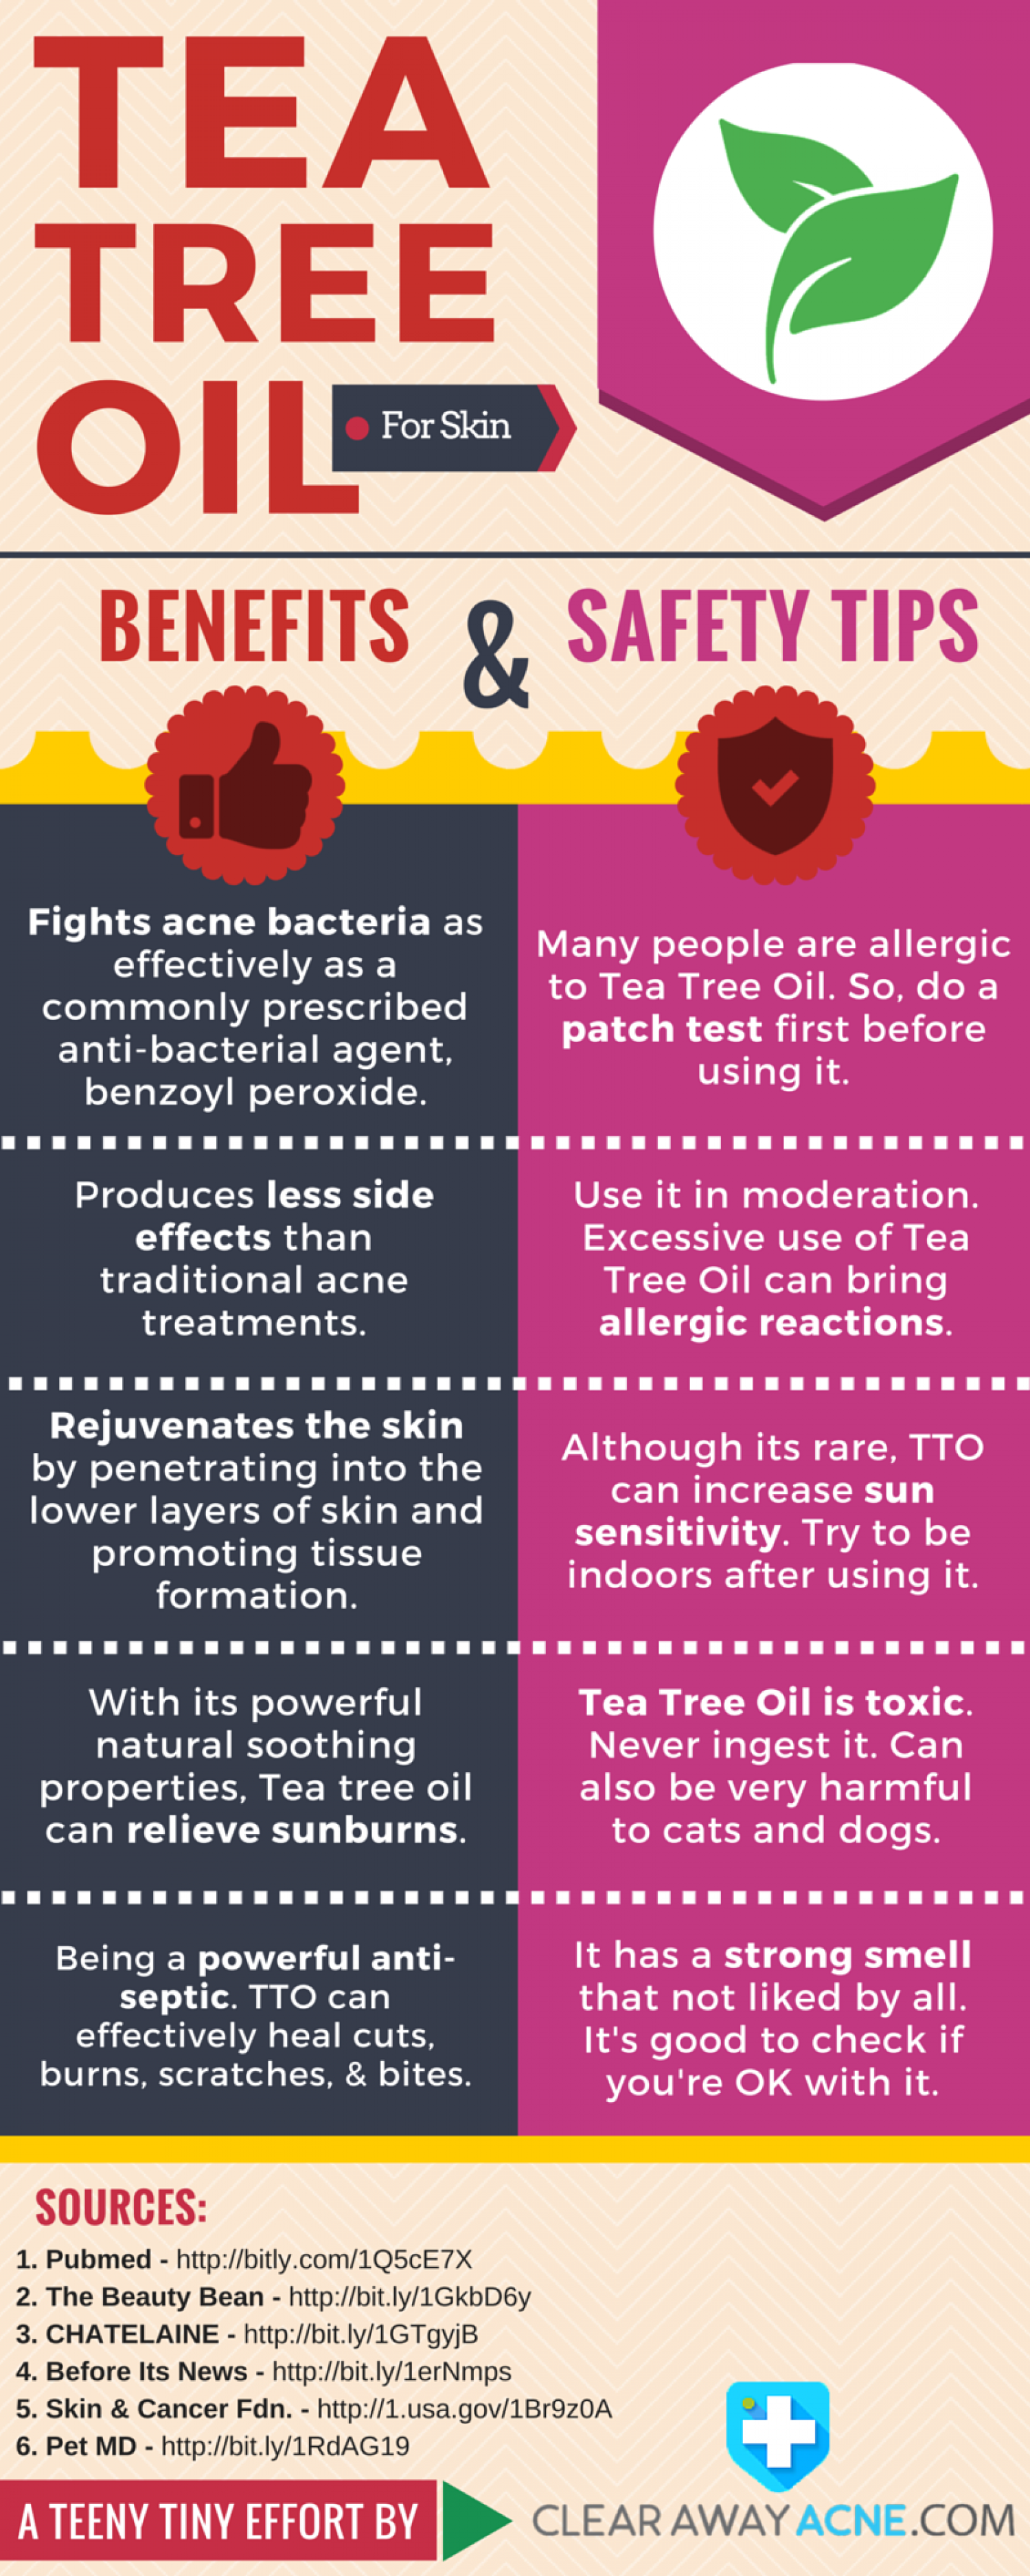 Tea Tree Tree Oil For Skin Care Benefits And Safety Tips